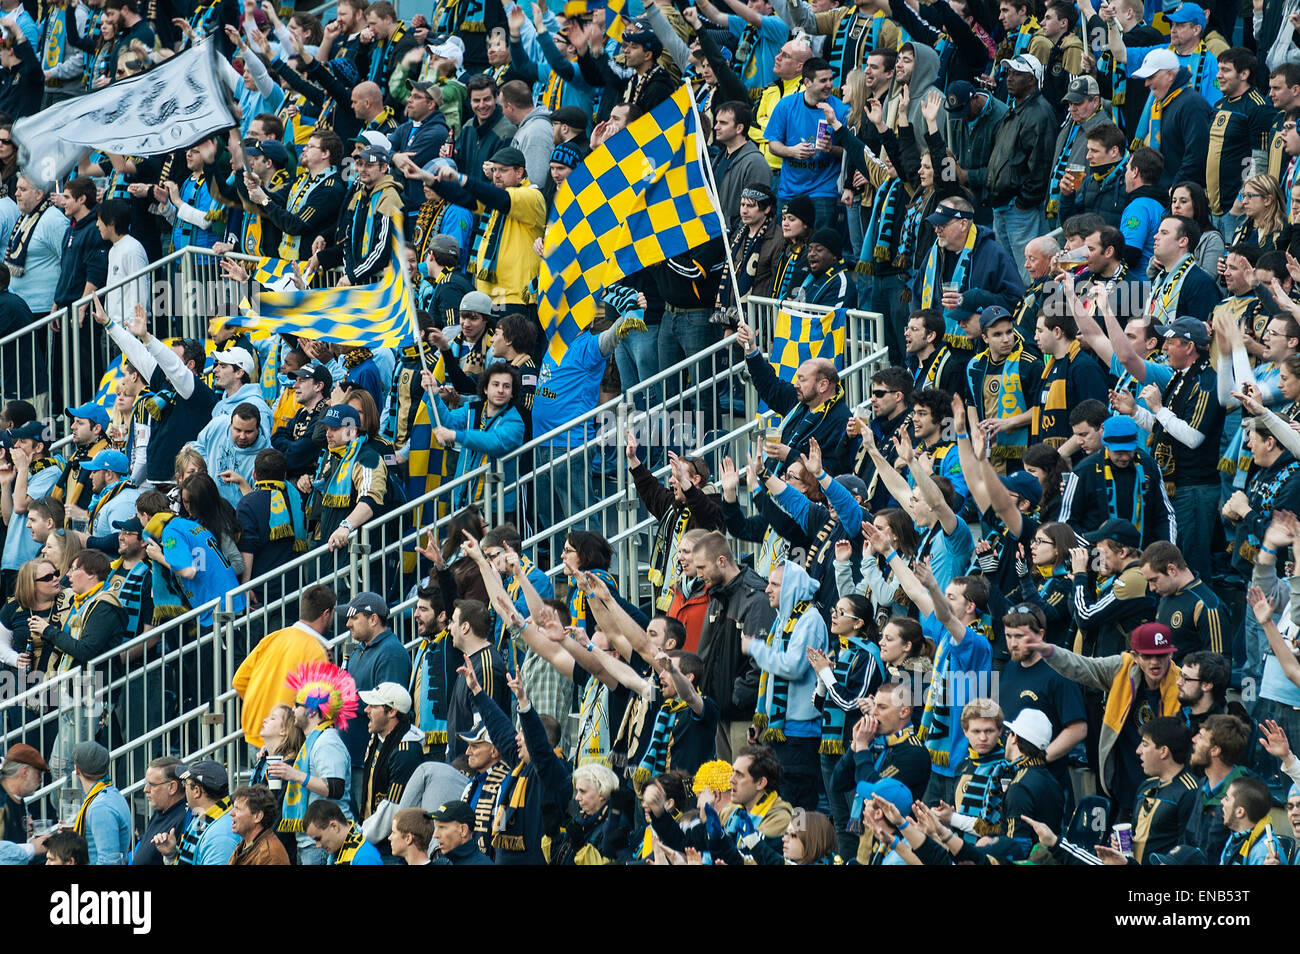 MLS soccer fans cheer a goal. - Stock Image